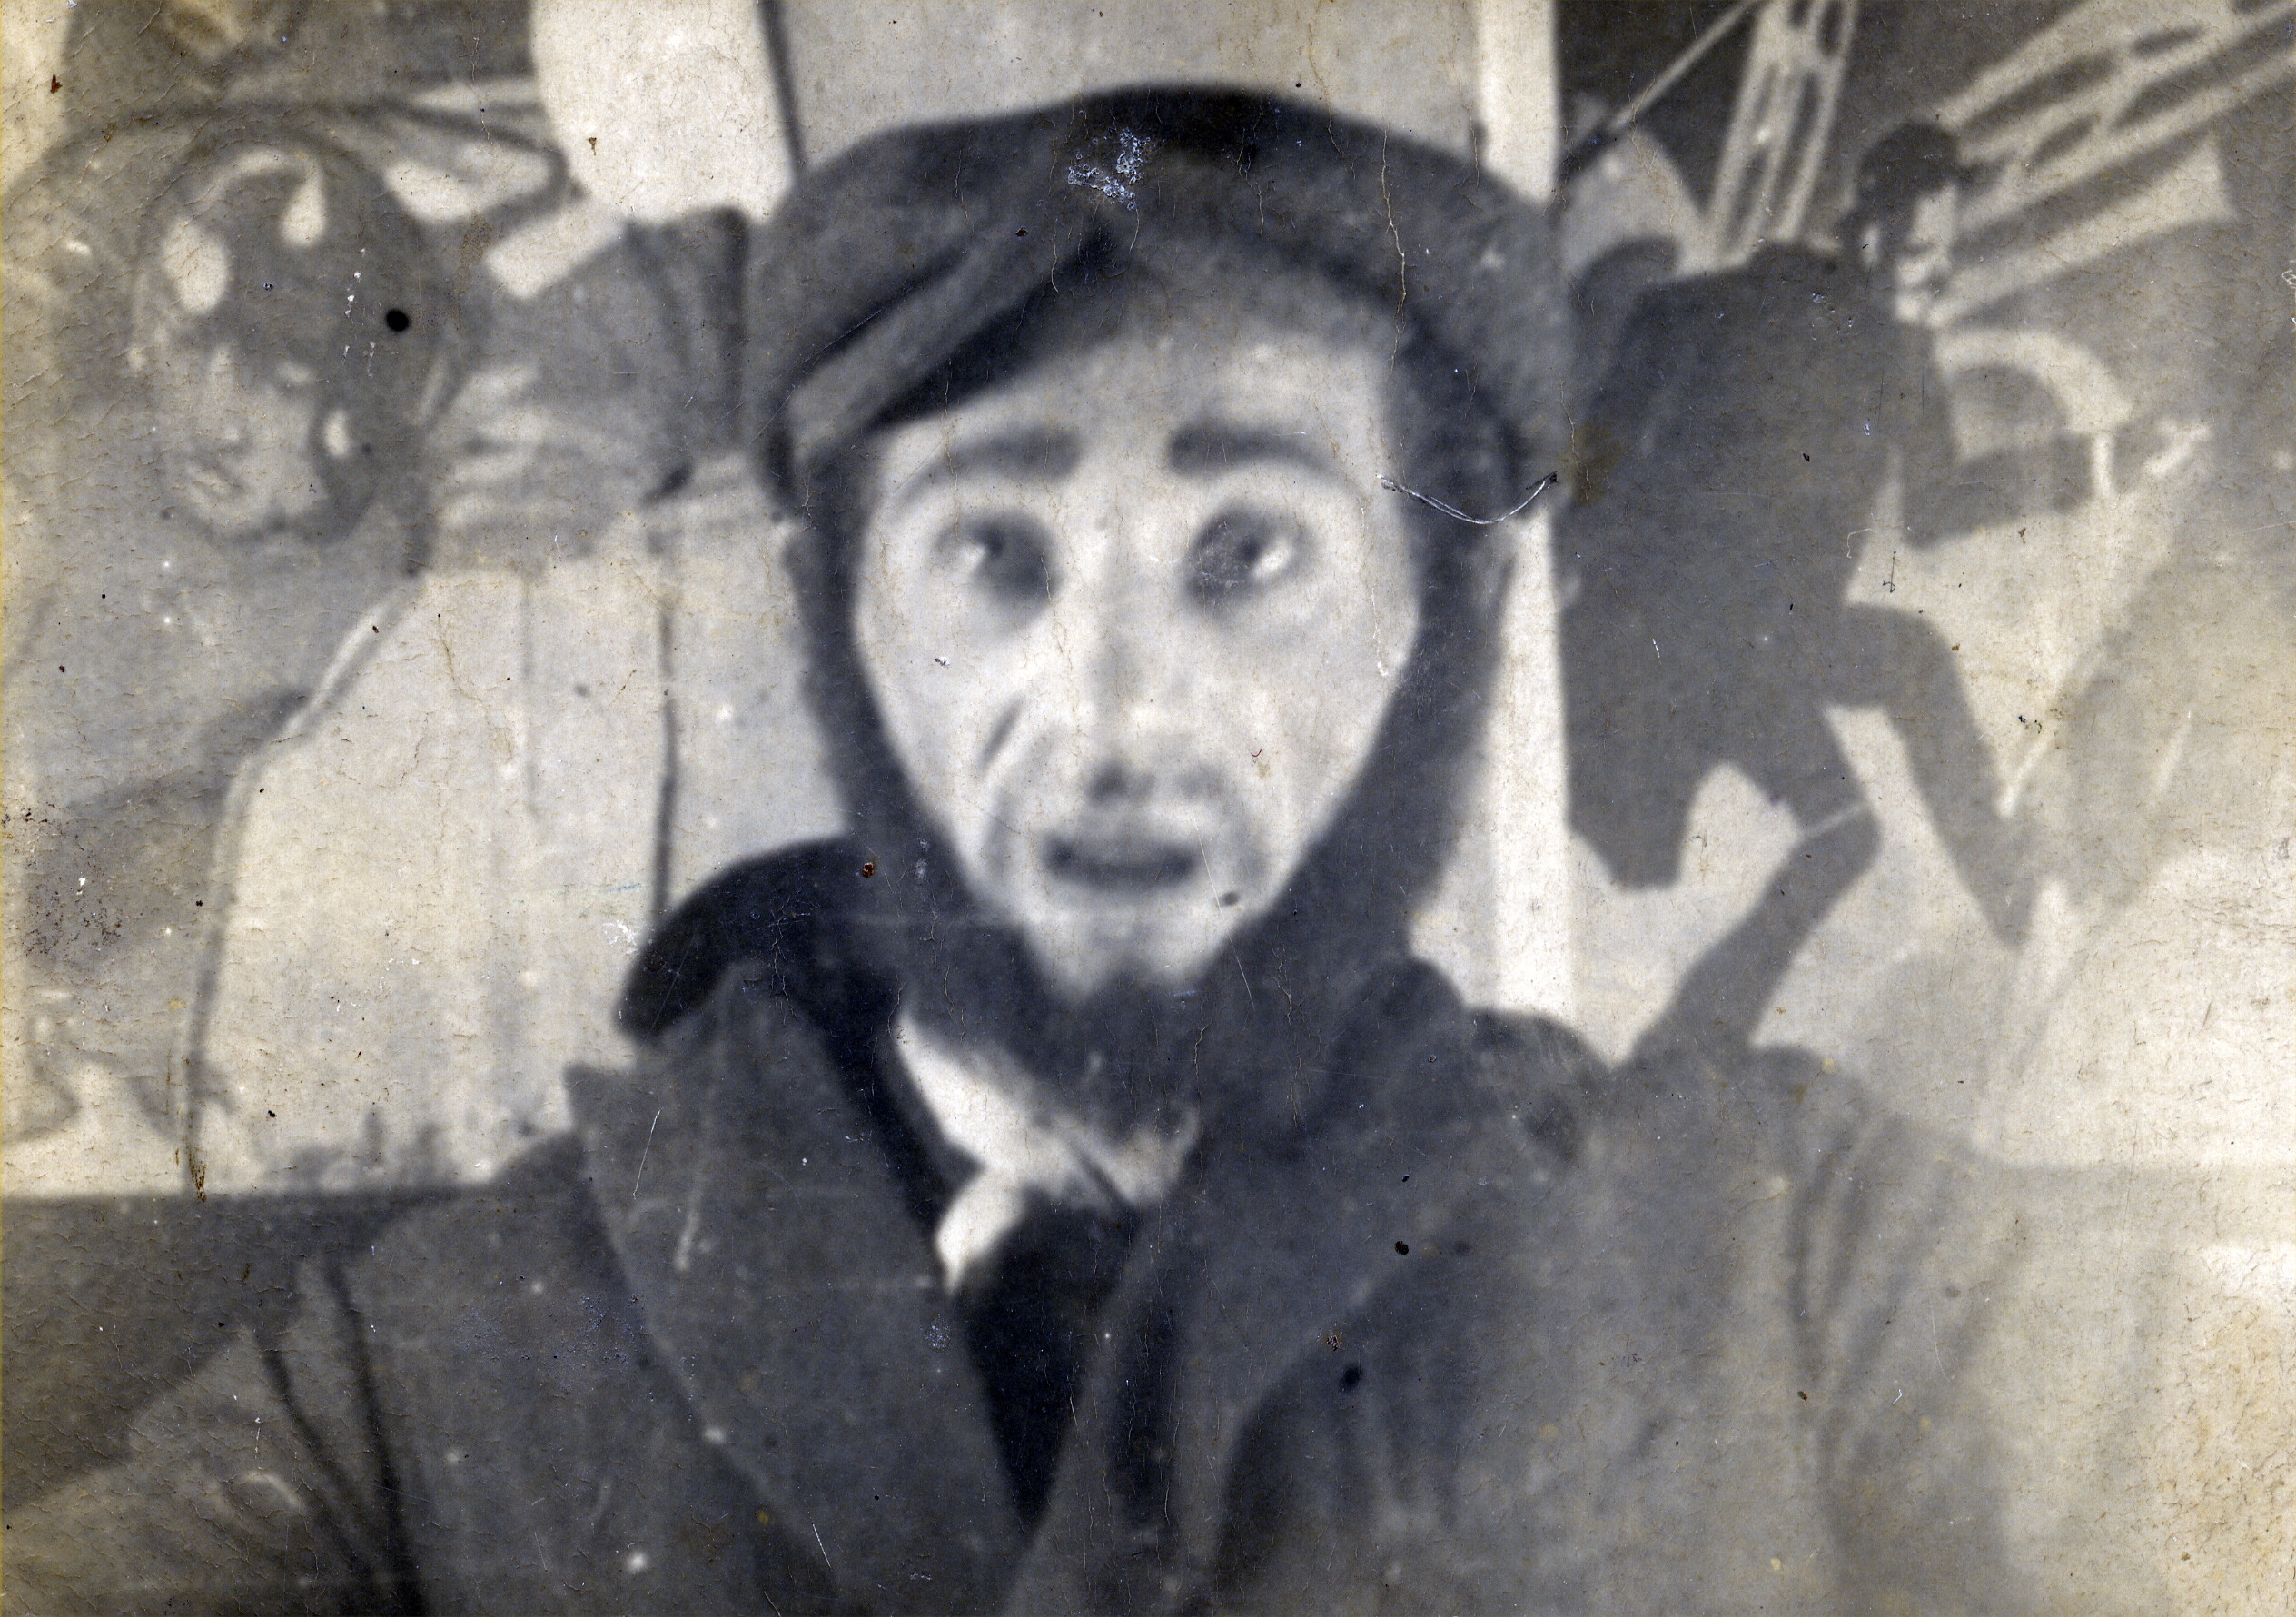 Shlomo Rybak, Rivka Miedzyrzecki's (brother acting in the Yiddish theater.  Shlomo Rybak attempted to escape to Russia but was killed on the way.